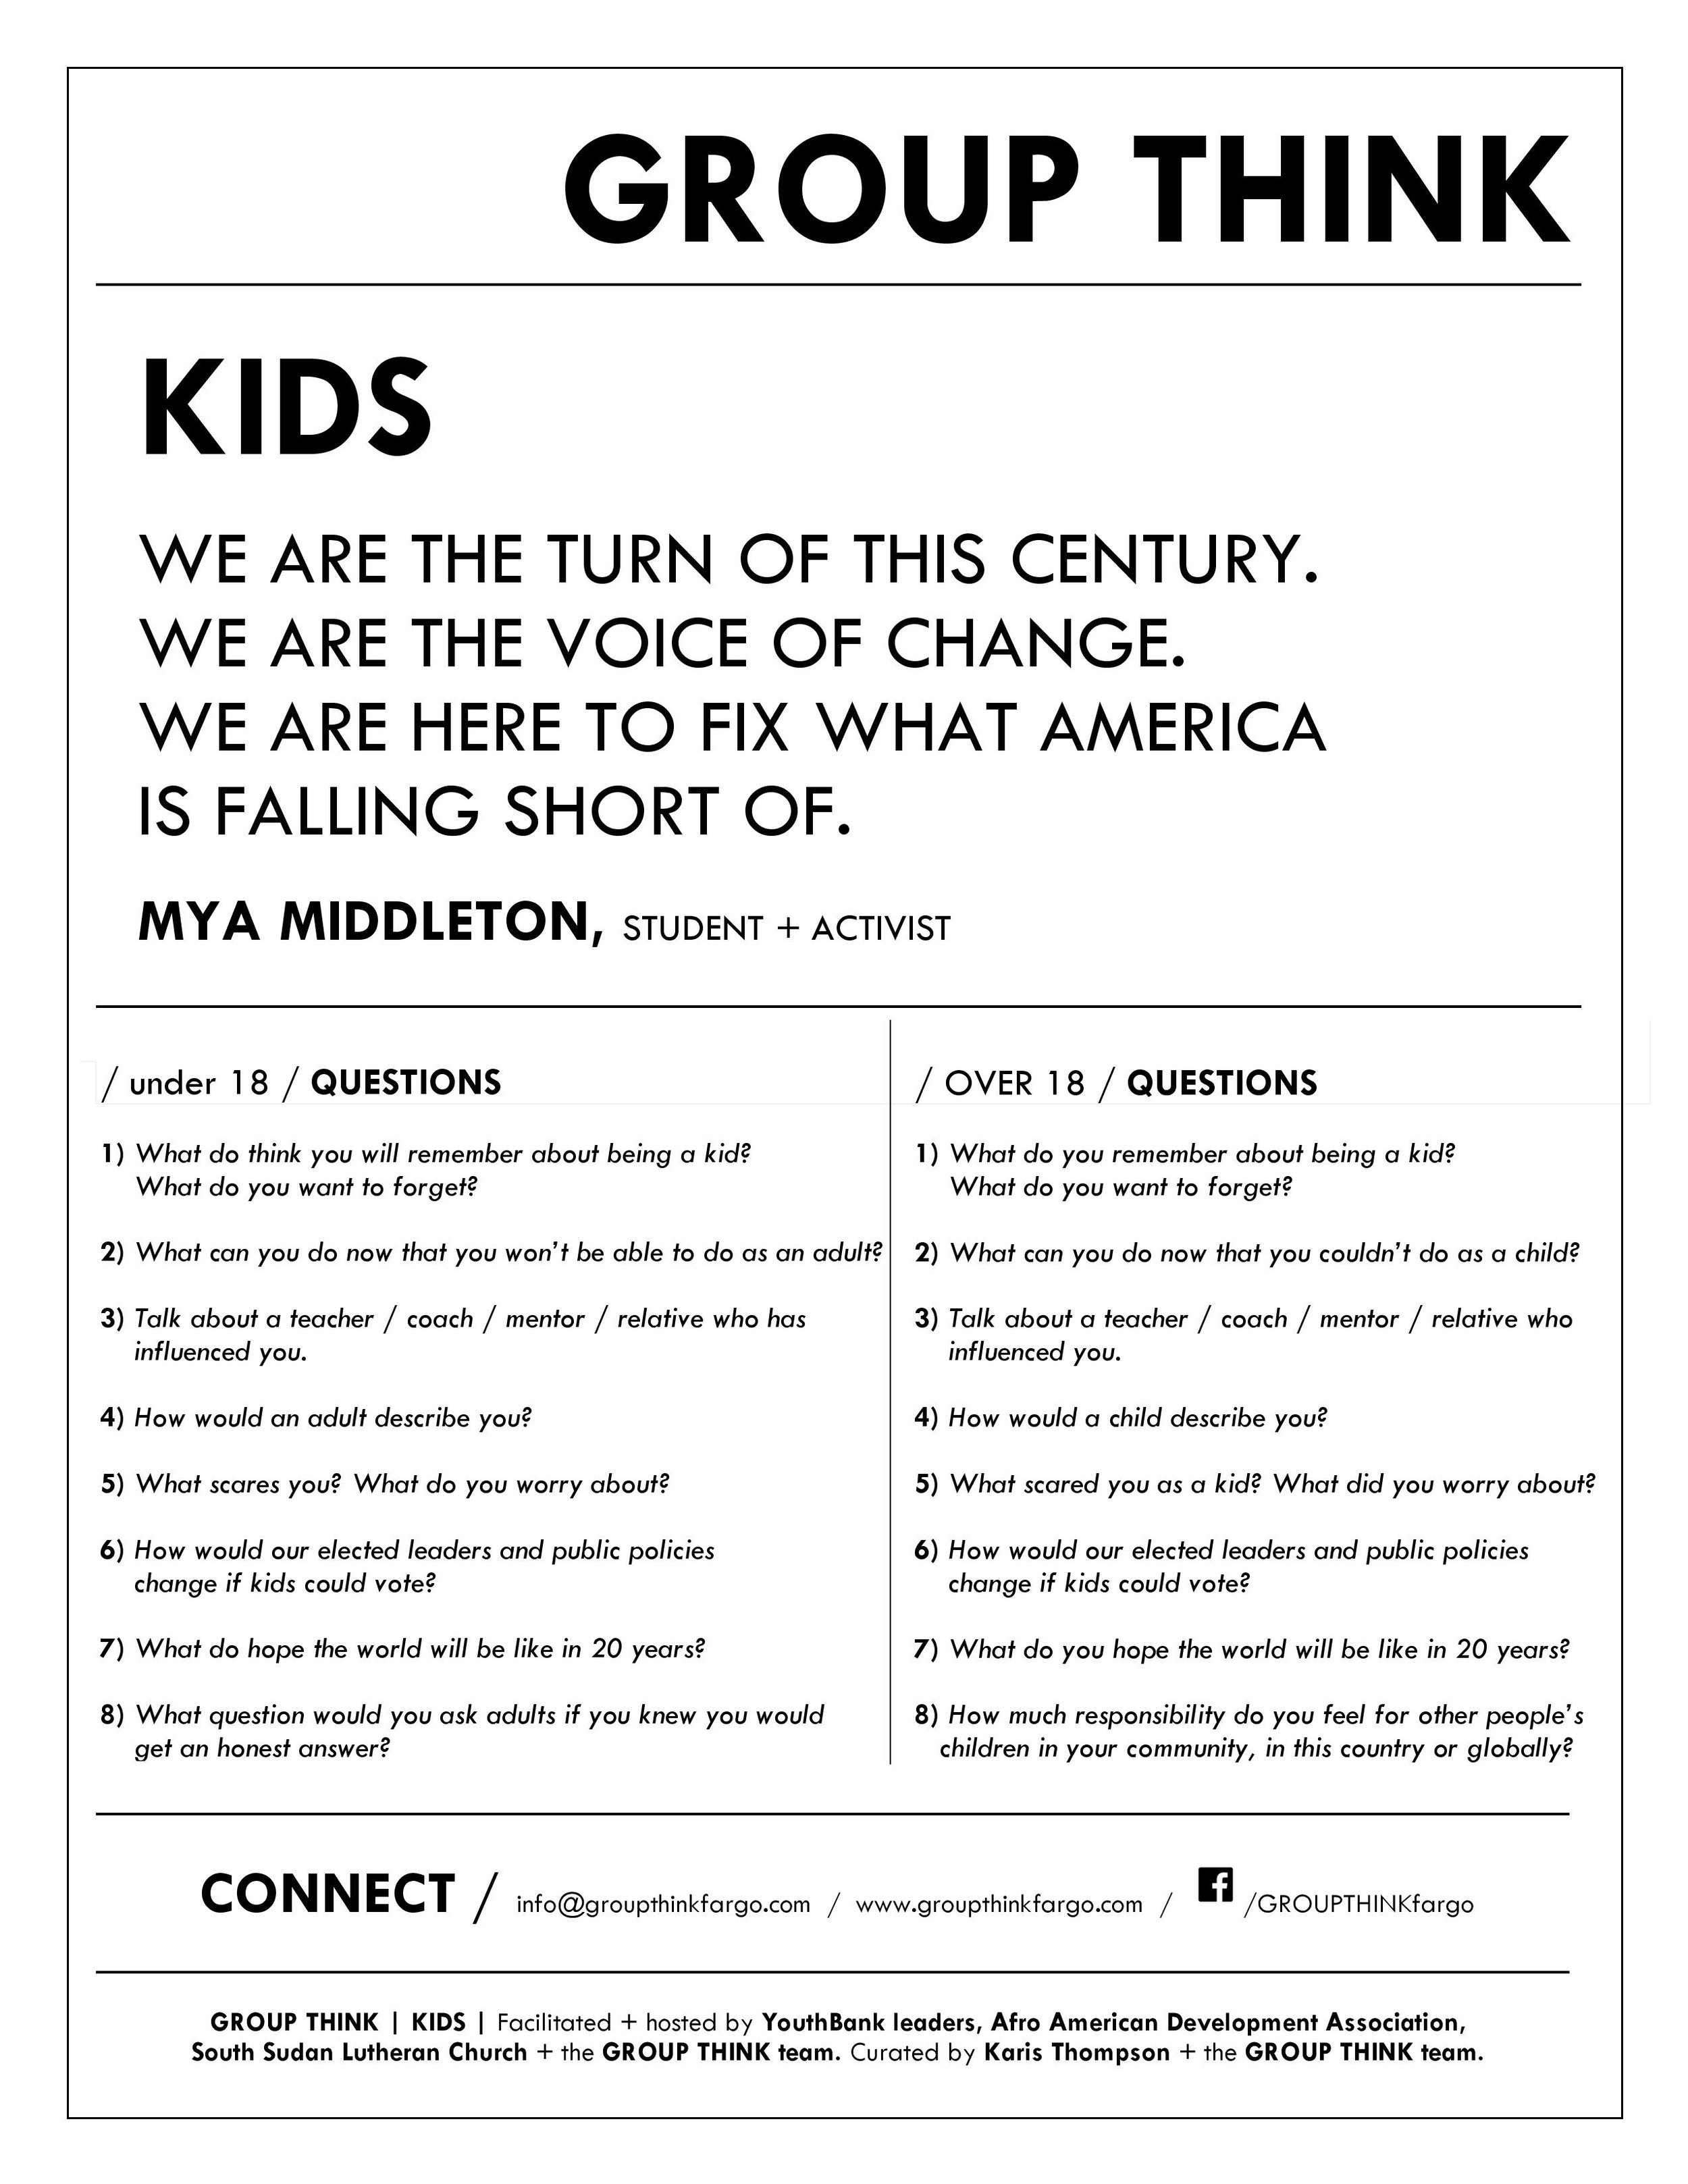 GROUP THINK - 07.2019 - KIDS handout-1.jpg